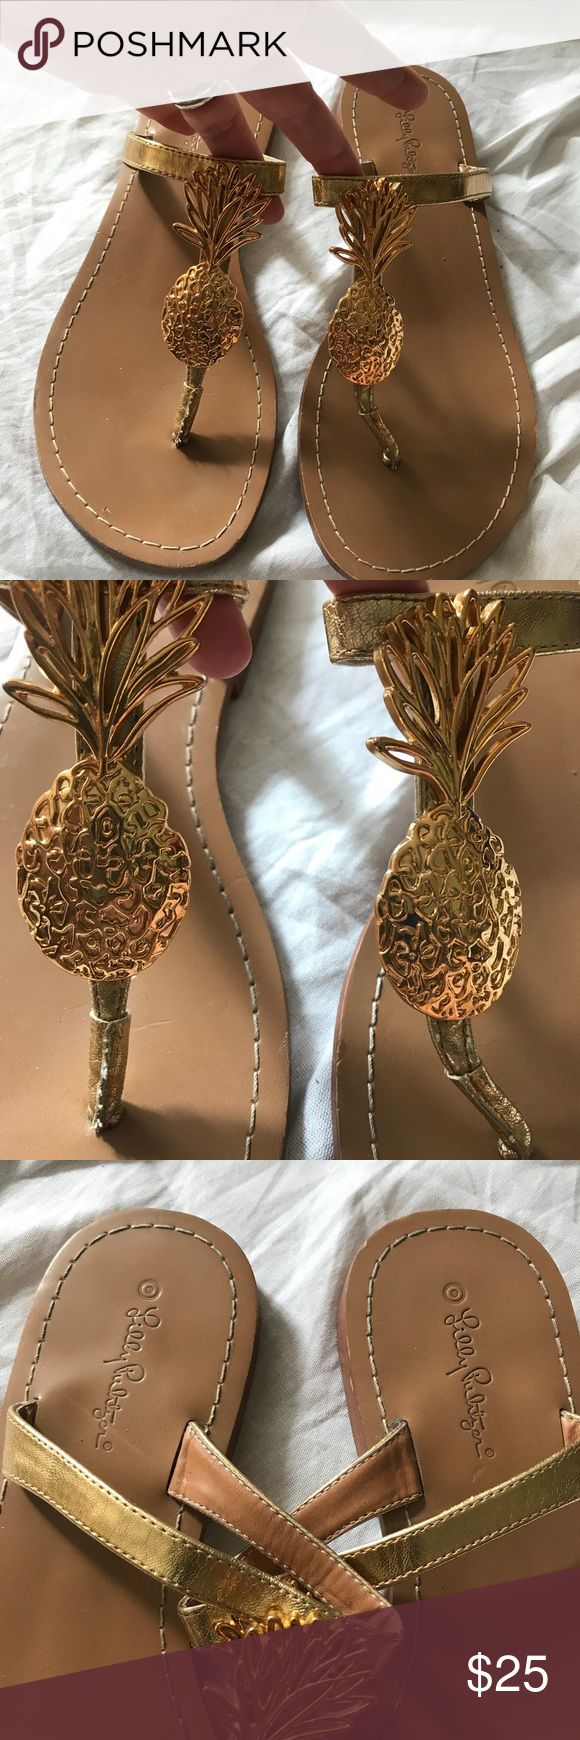 Lilly Pulitzer for Target Gold Pineapple Sandals 8 Lilly Pulitzer for Target Gold Pineapple Sandals 8. Summer is coming and these will look cute with shorts and maxi dresses. Please ask questions! Lilly Pulitzer for Target Shoes Sandals